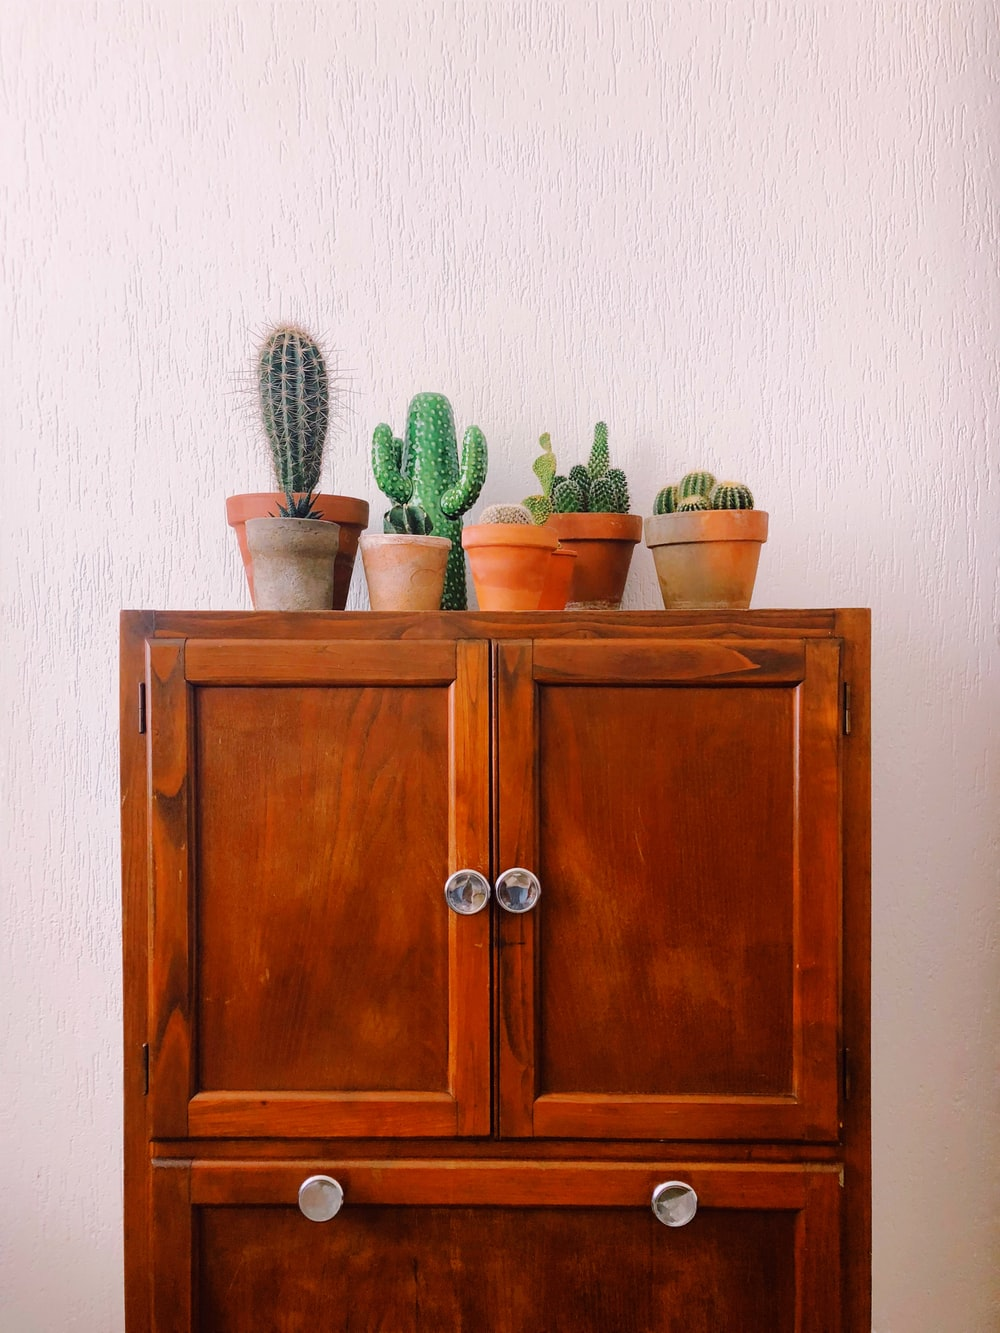 green cactus plant on brown wooden cabinet